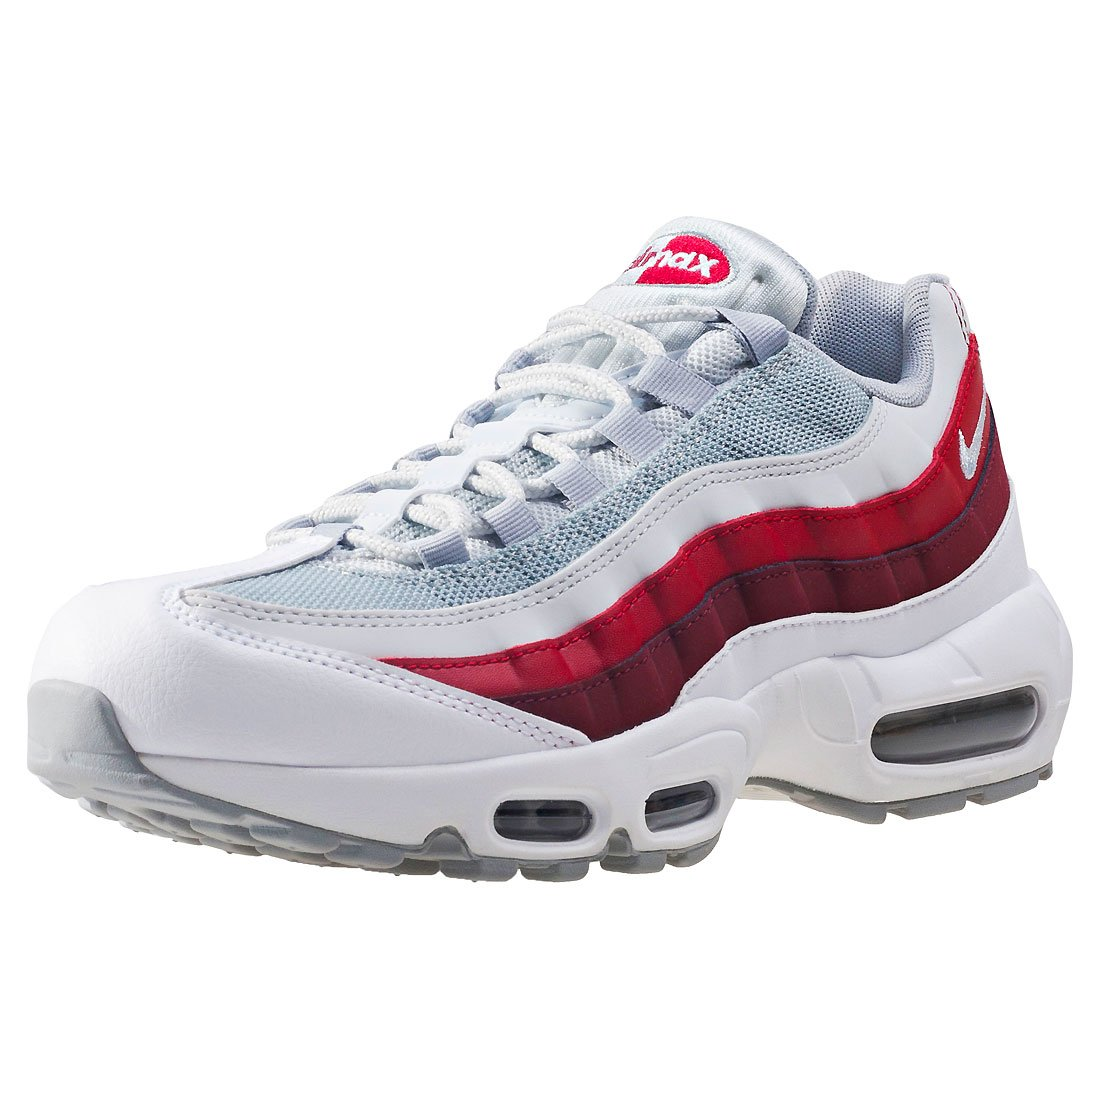 premium selection cdb34 07968 Galleon - NIKE Air Max 95 Essential Men s Shoes White Wolf Grey Pure  Platinum 749766-103 (11.5 D(M) US)